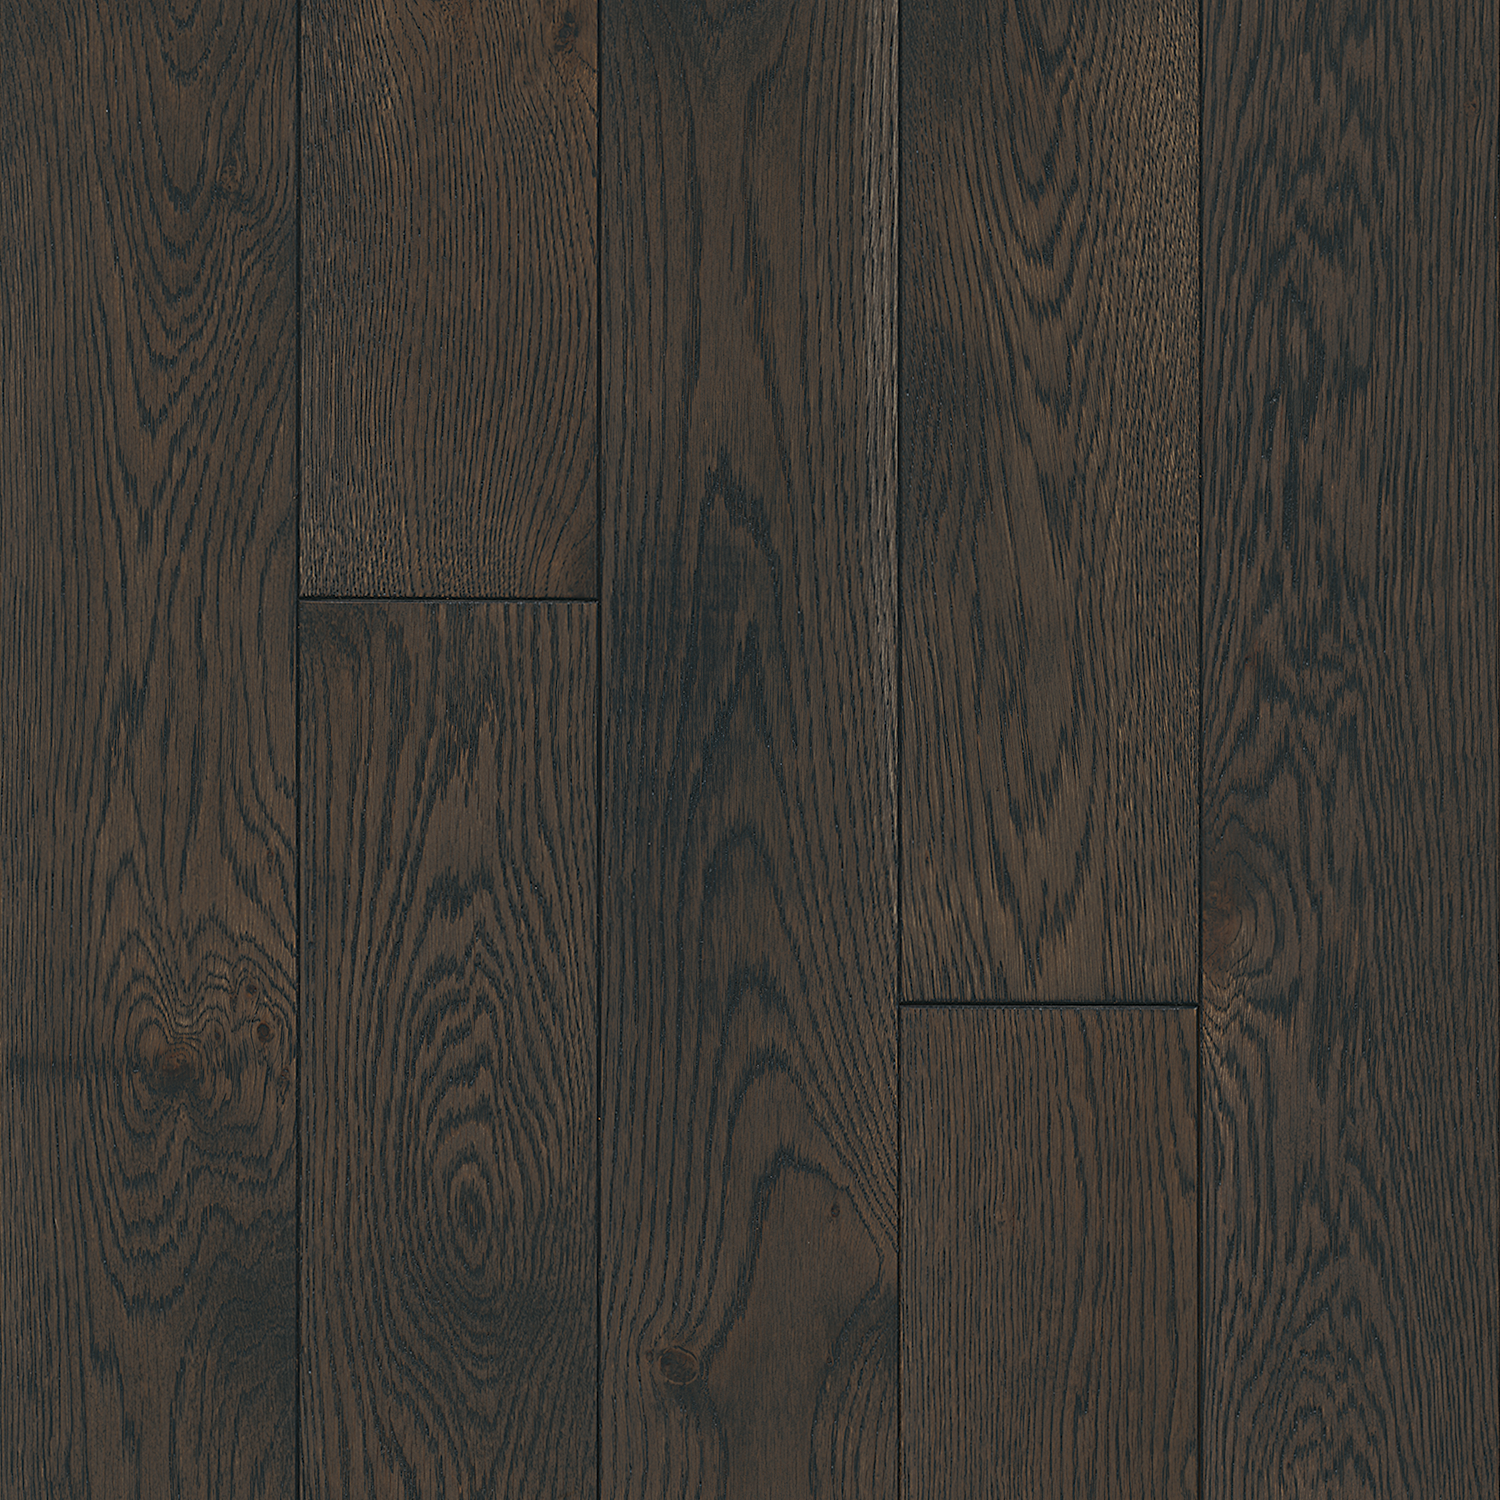 TimberBrushed Solid Shadow Play Solid Hardwood SKTB59L70W